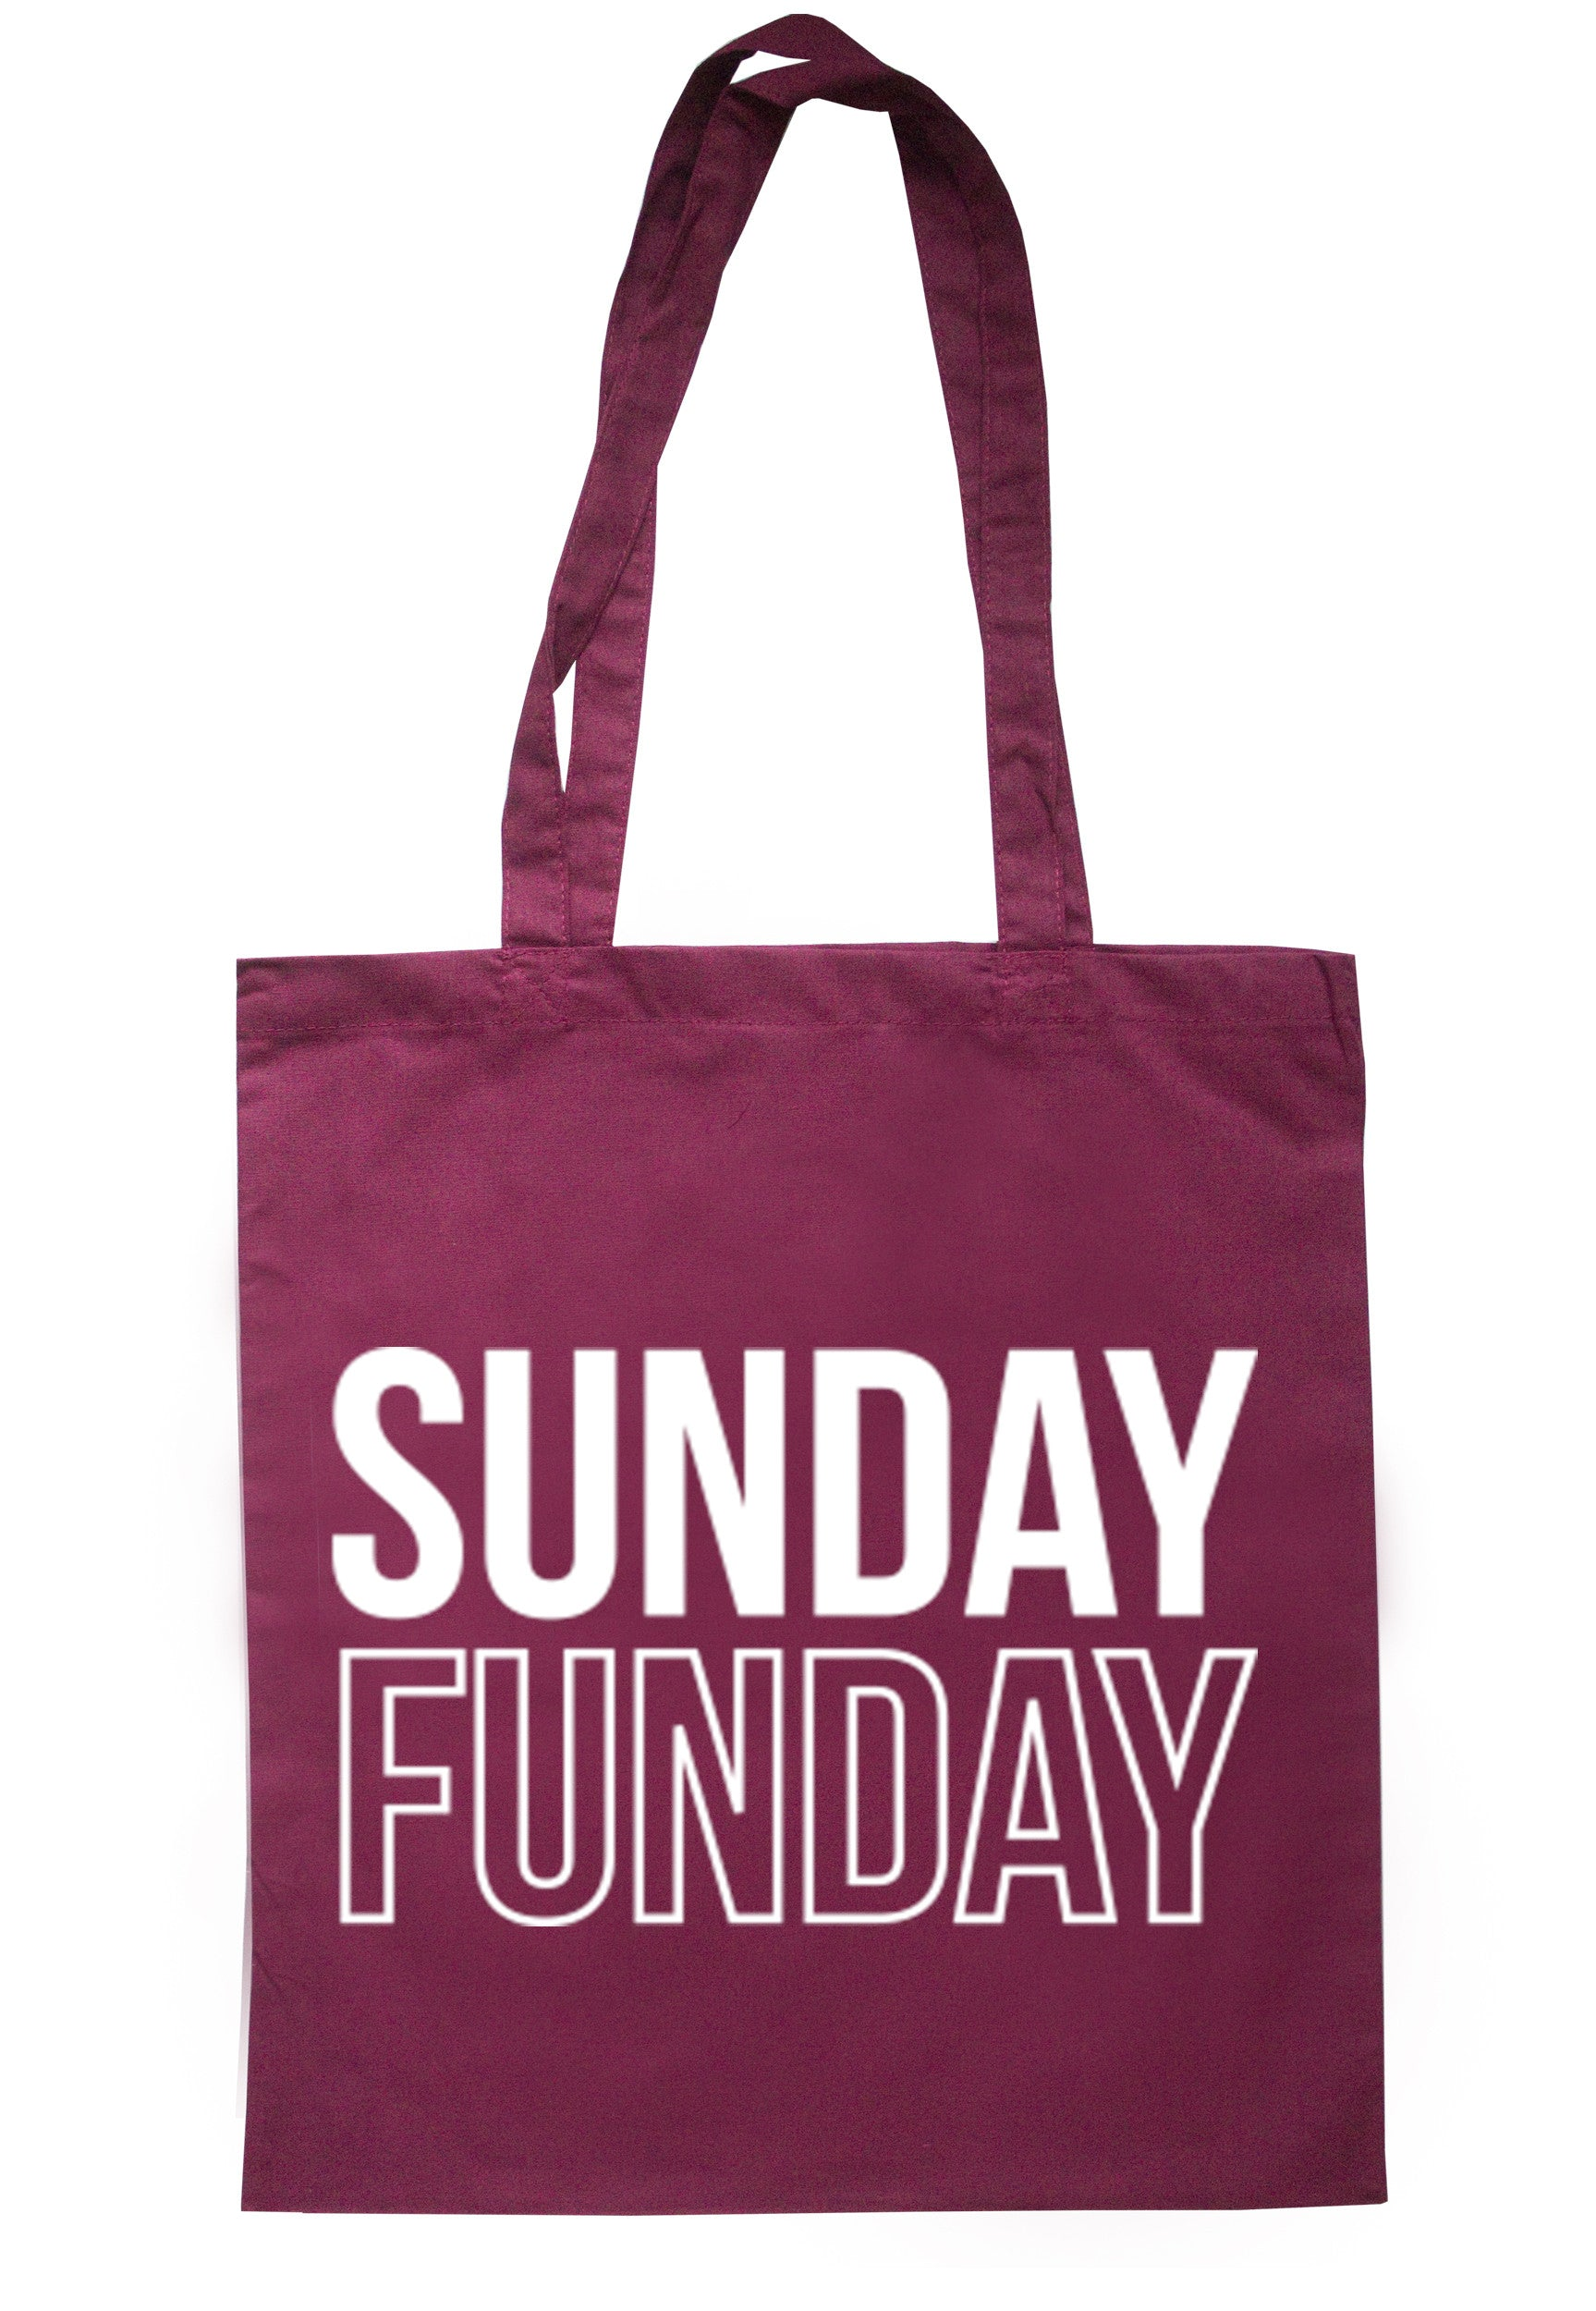 Sunday Funday Tote Bag TB0139 - Illustrated Identity Ltd.